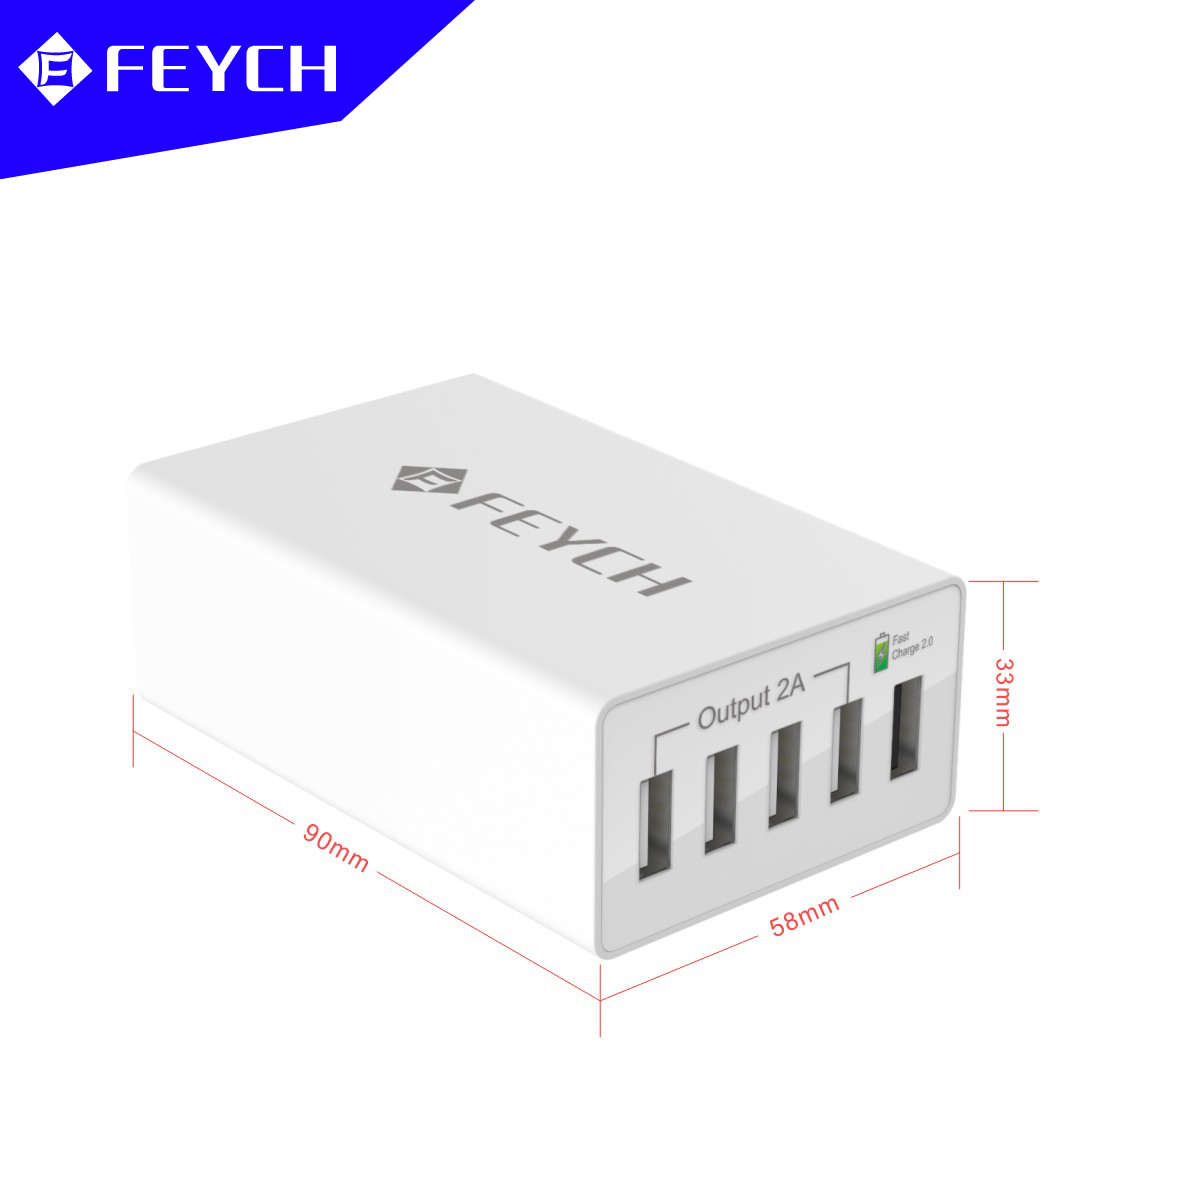 FEYCH QC2.0 50W 10A 5 USB Ports Quick Charger US Desktop Charger For Cell Phone Tablet Camera